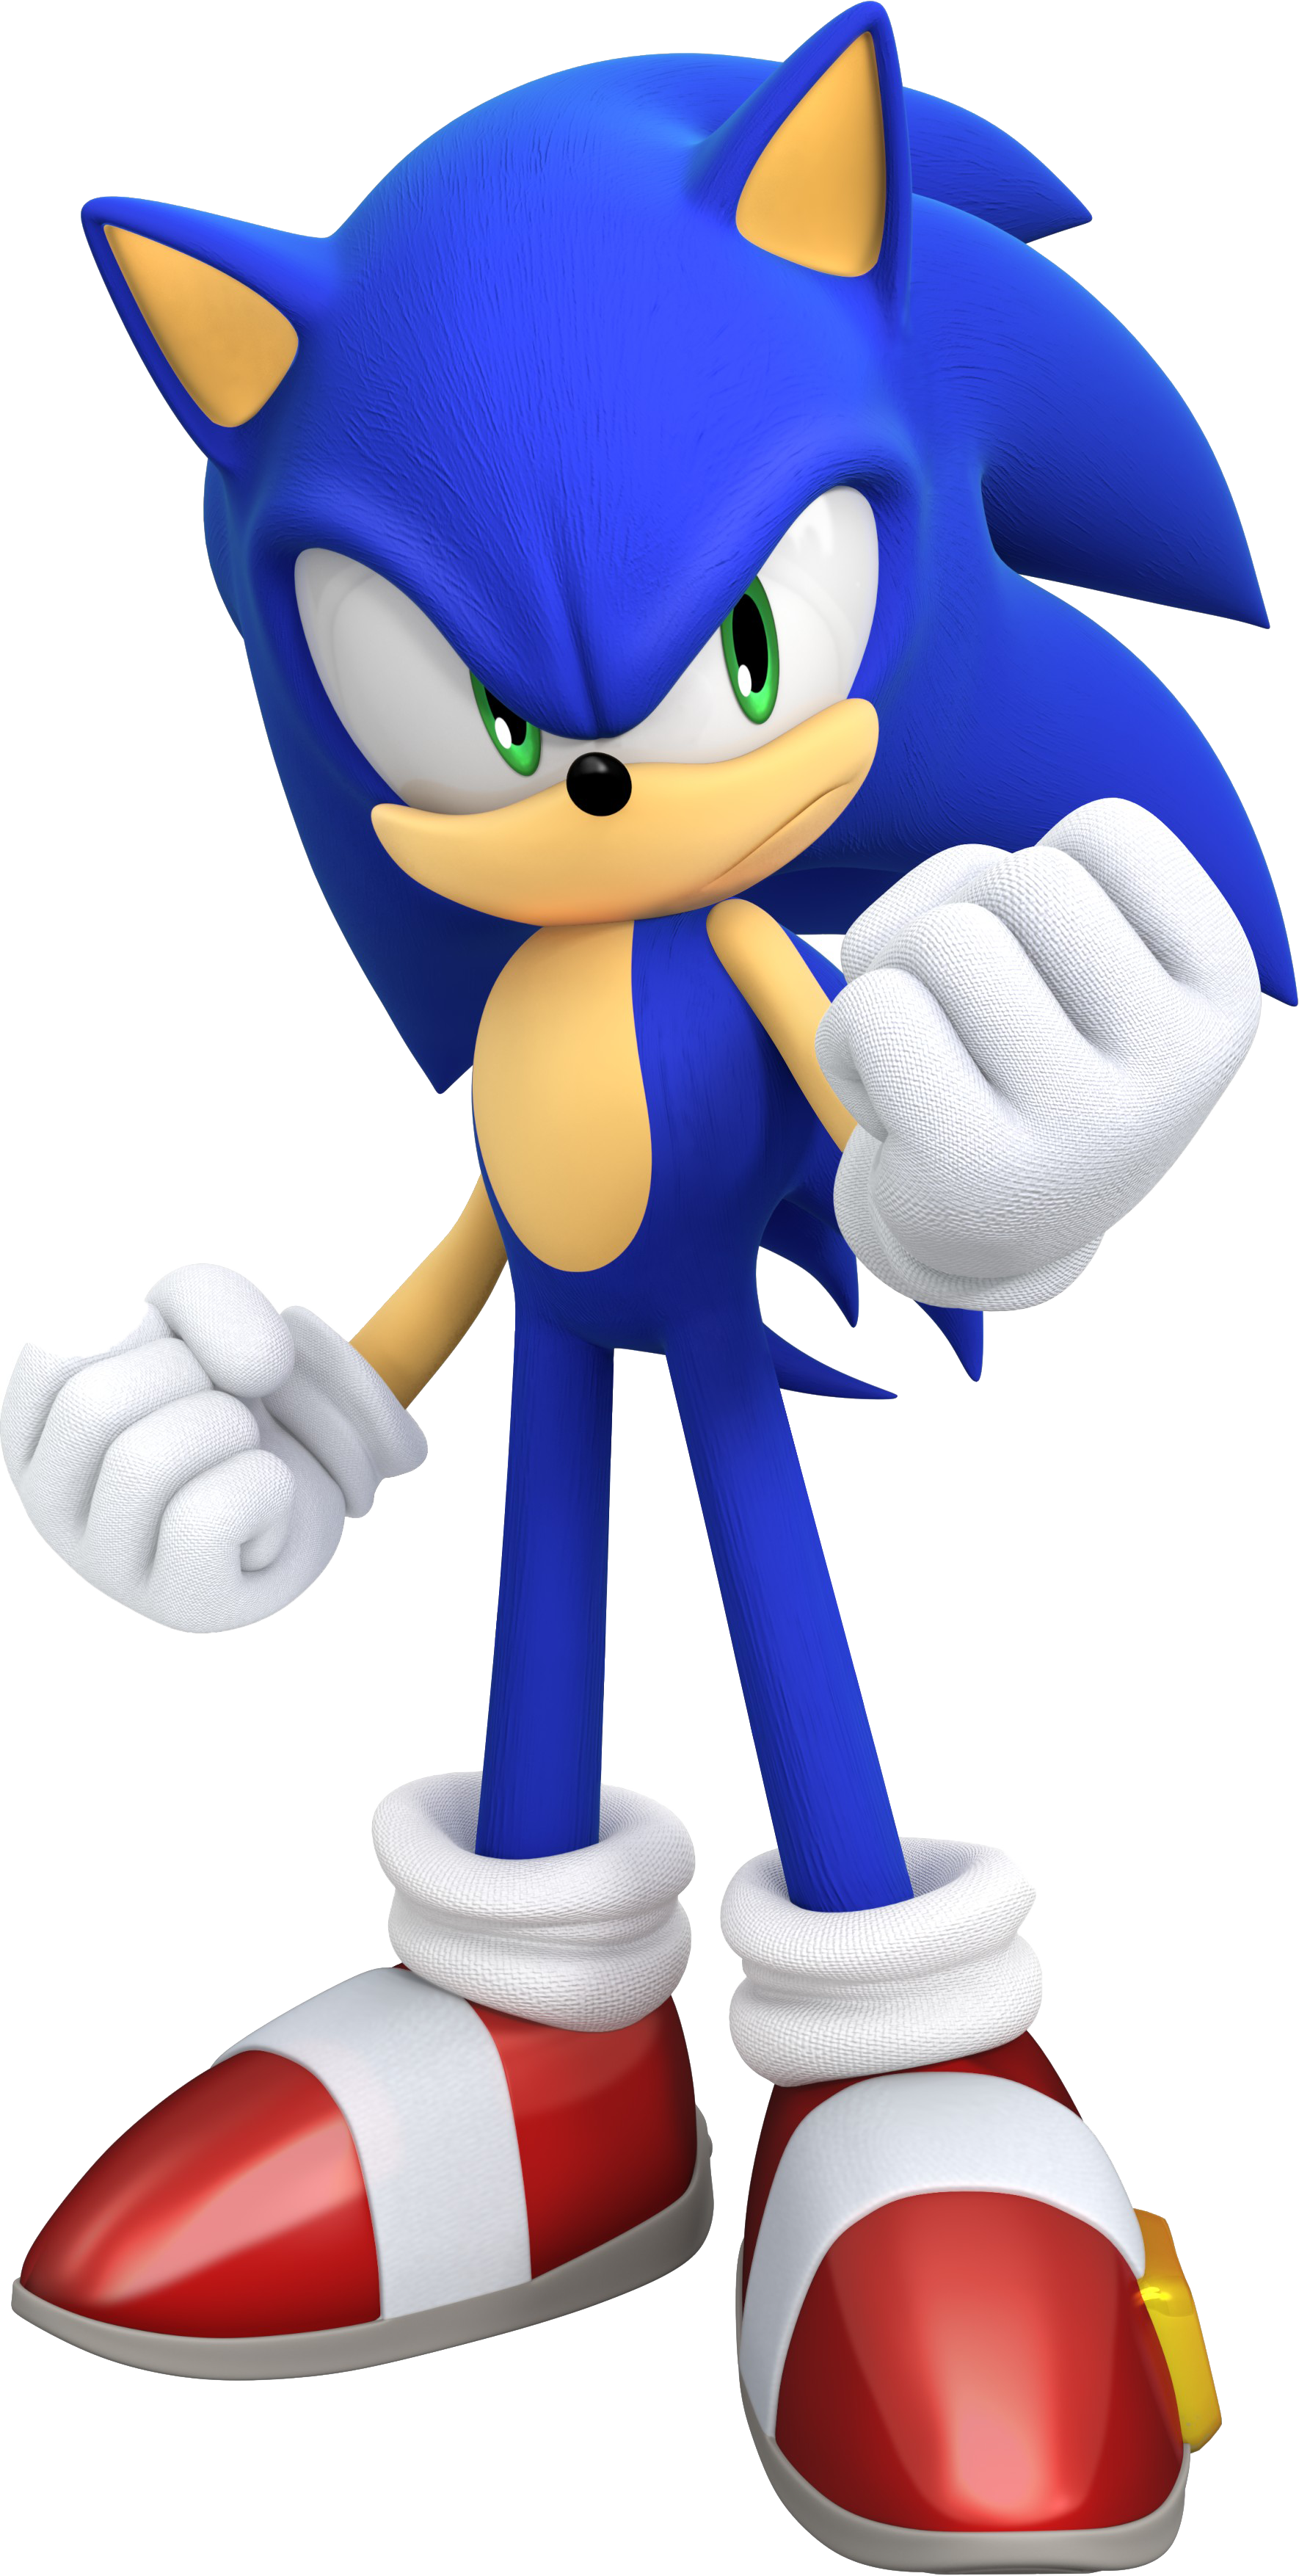 Sonic The Hedgehog PNG Image Download.